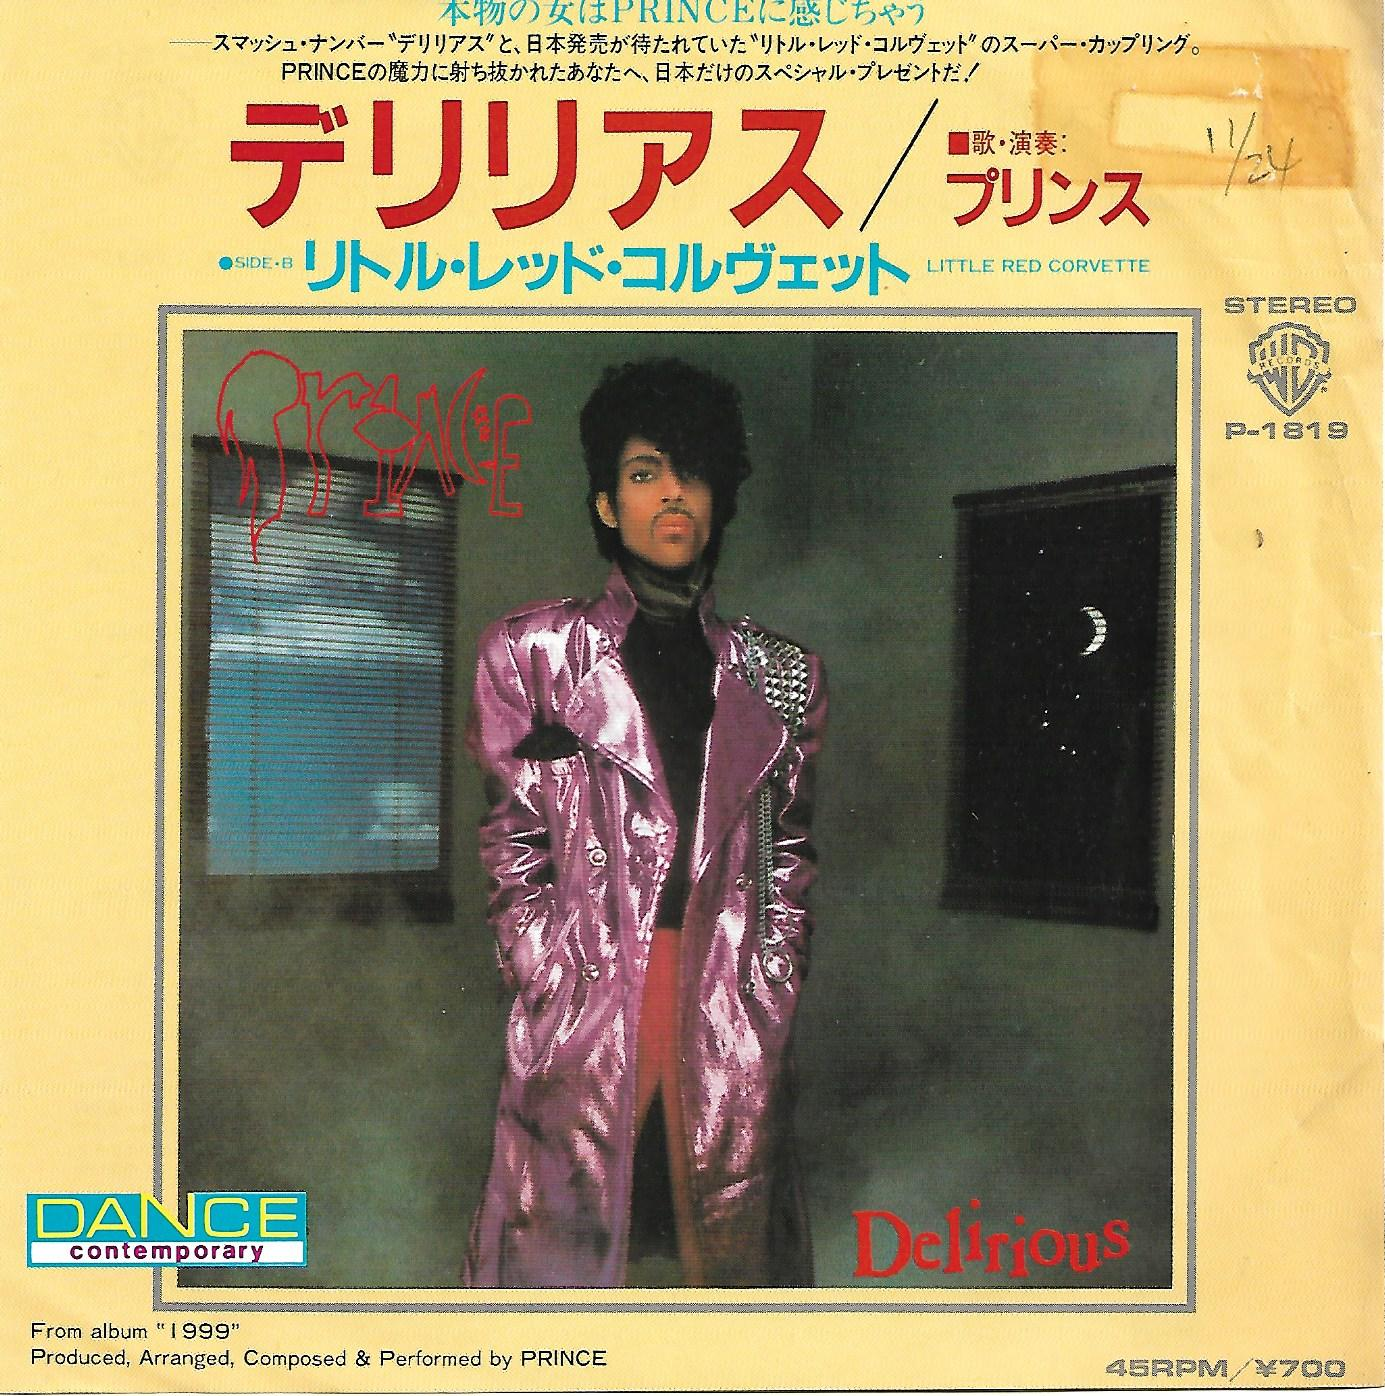 7 Prince Delirious Little Red Corvette Rare Japanese Prom